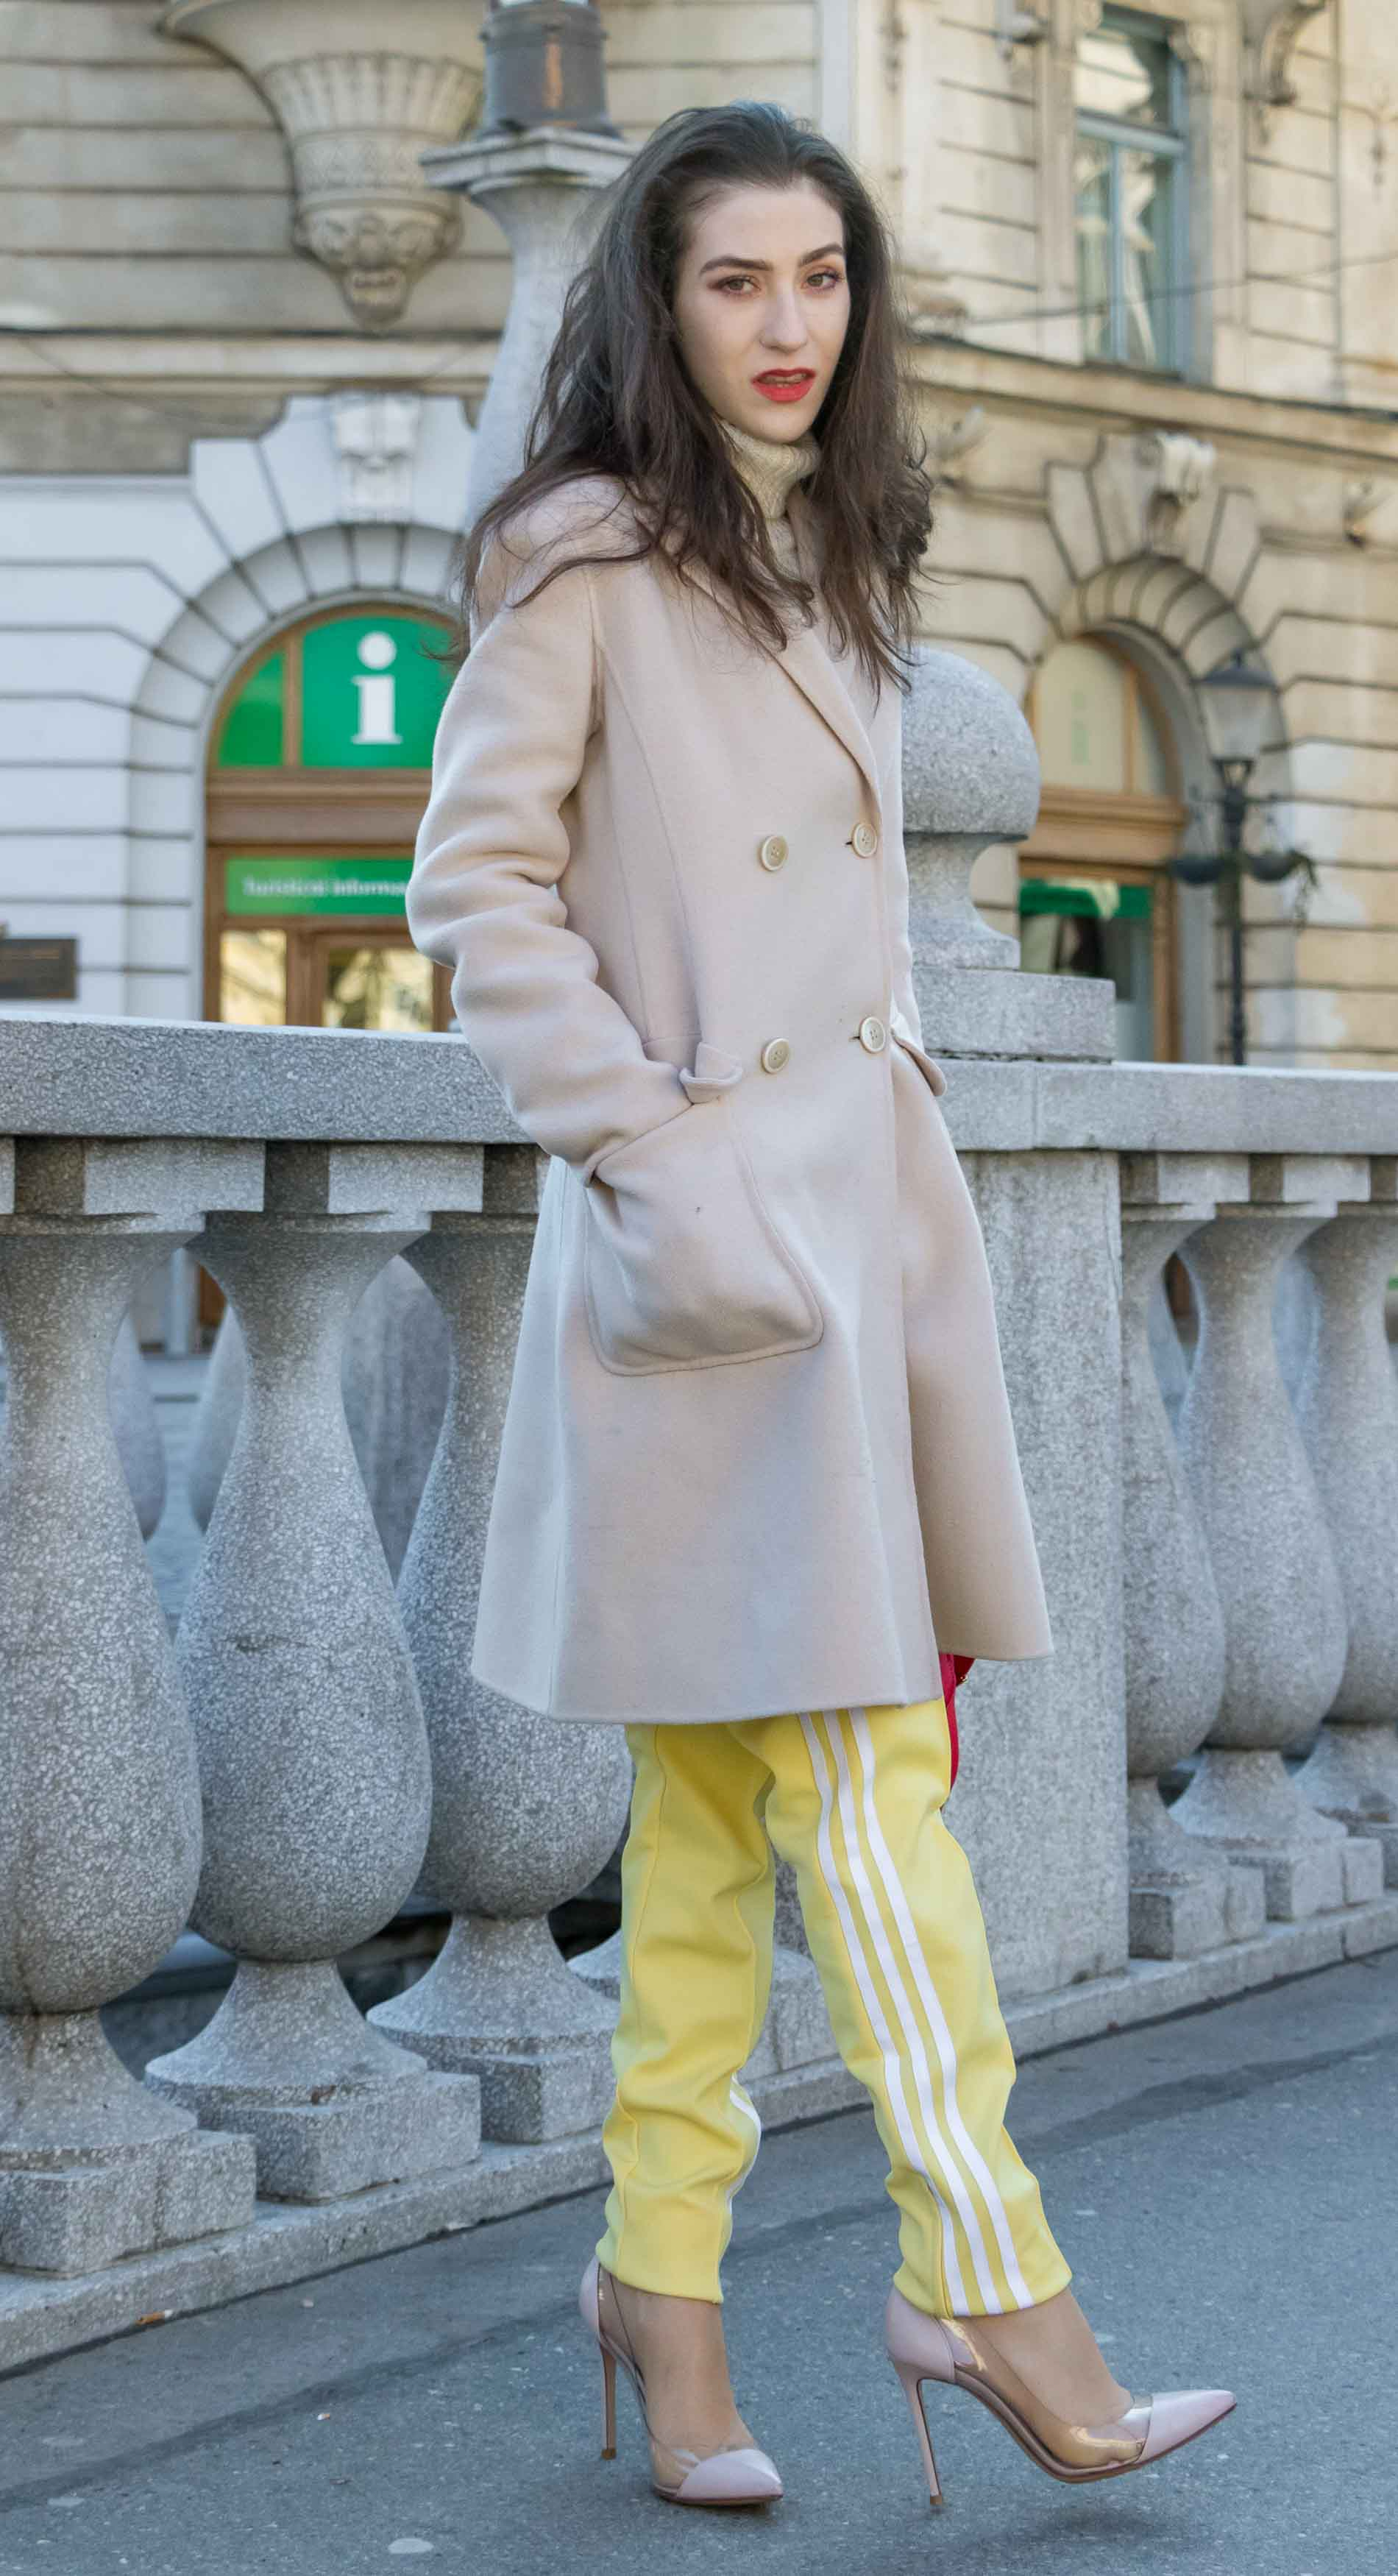 Fashion Blogger Veronika Lipar of Brunette from Wall Street wearing yellow track pants with white stripes from Adidas, white turtleneck knit sweater, off-white pastel double breasted coat from Weekend Max Mara, blush powder transparent plexi shoes from Gianvito Rossi, pink top handle bag from See by Chloe while standing on the bridge in Ljubljana